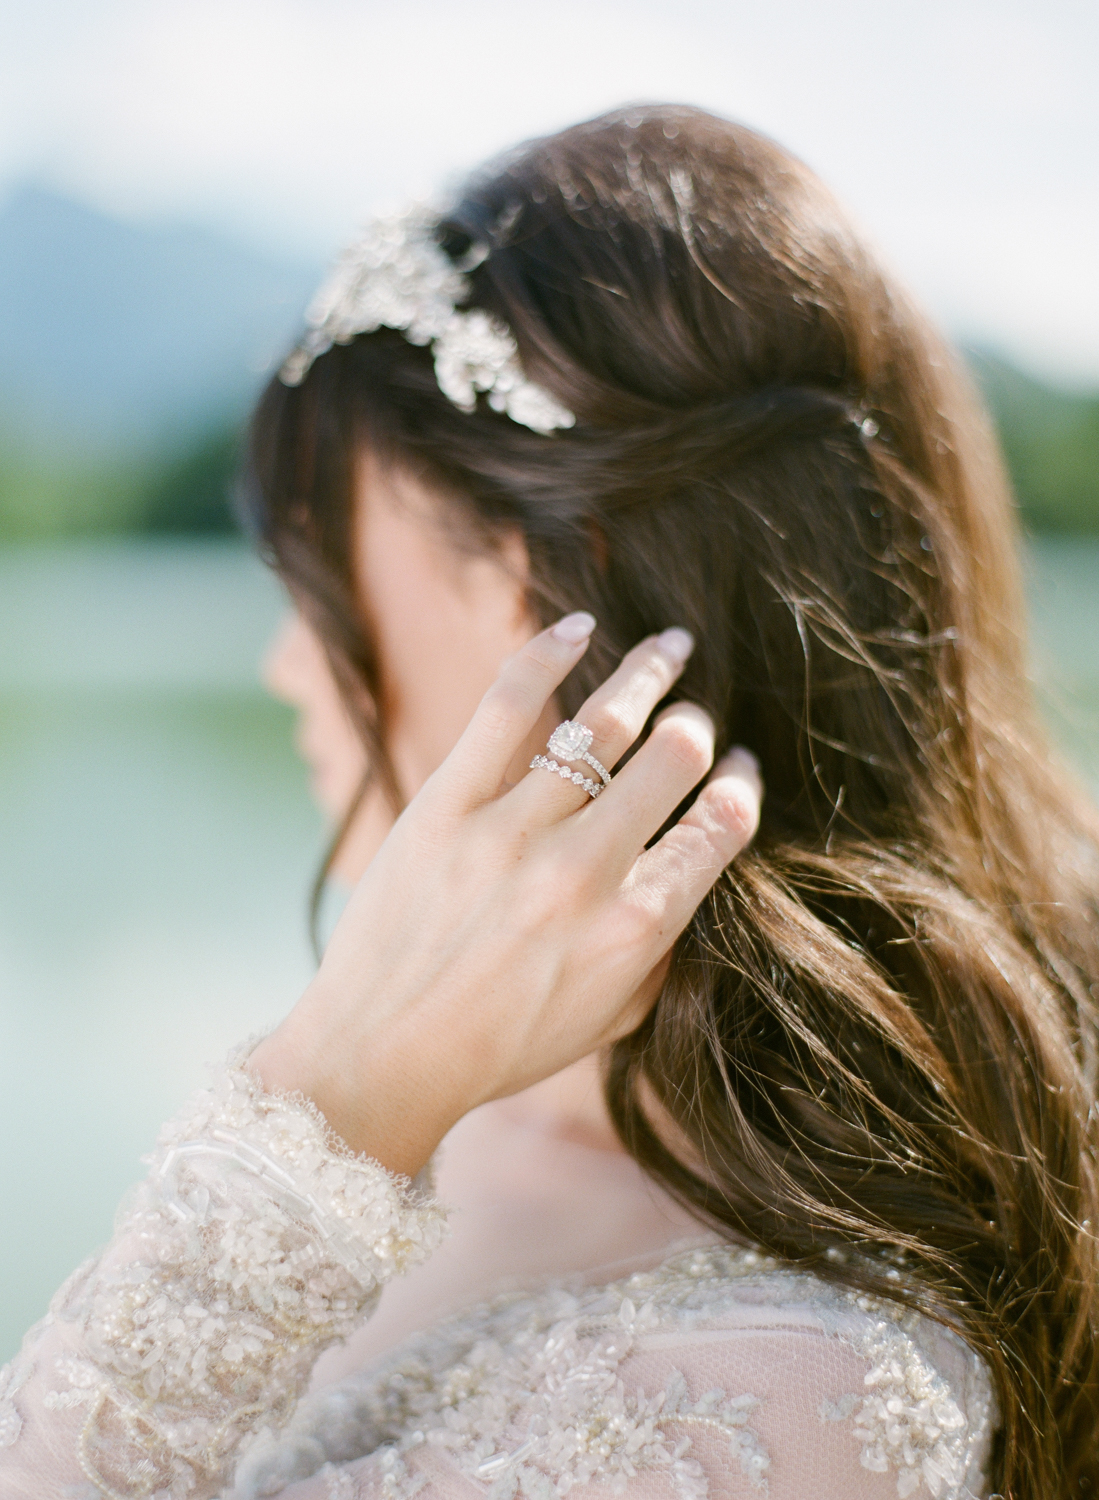 lake_como_wedding_photographer_nikol_bodnarova_146.JPG